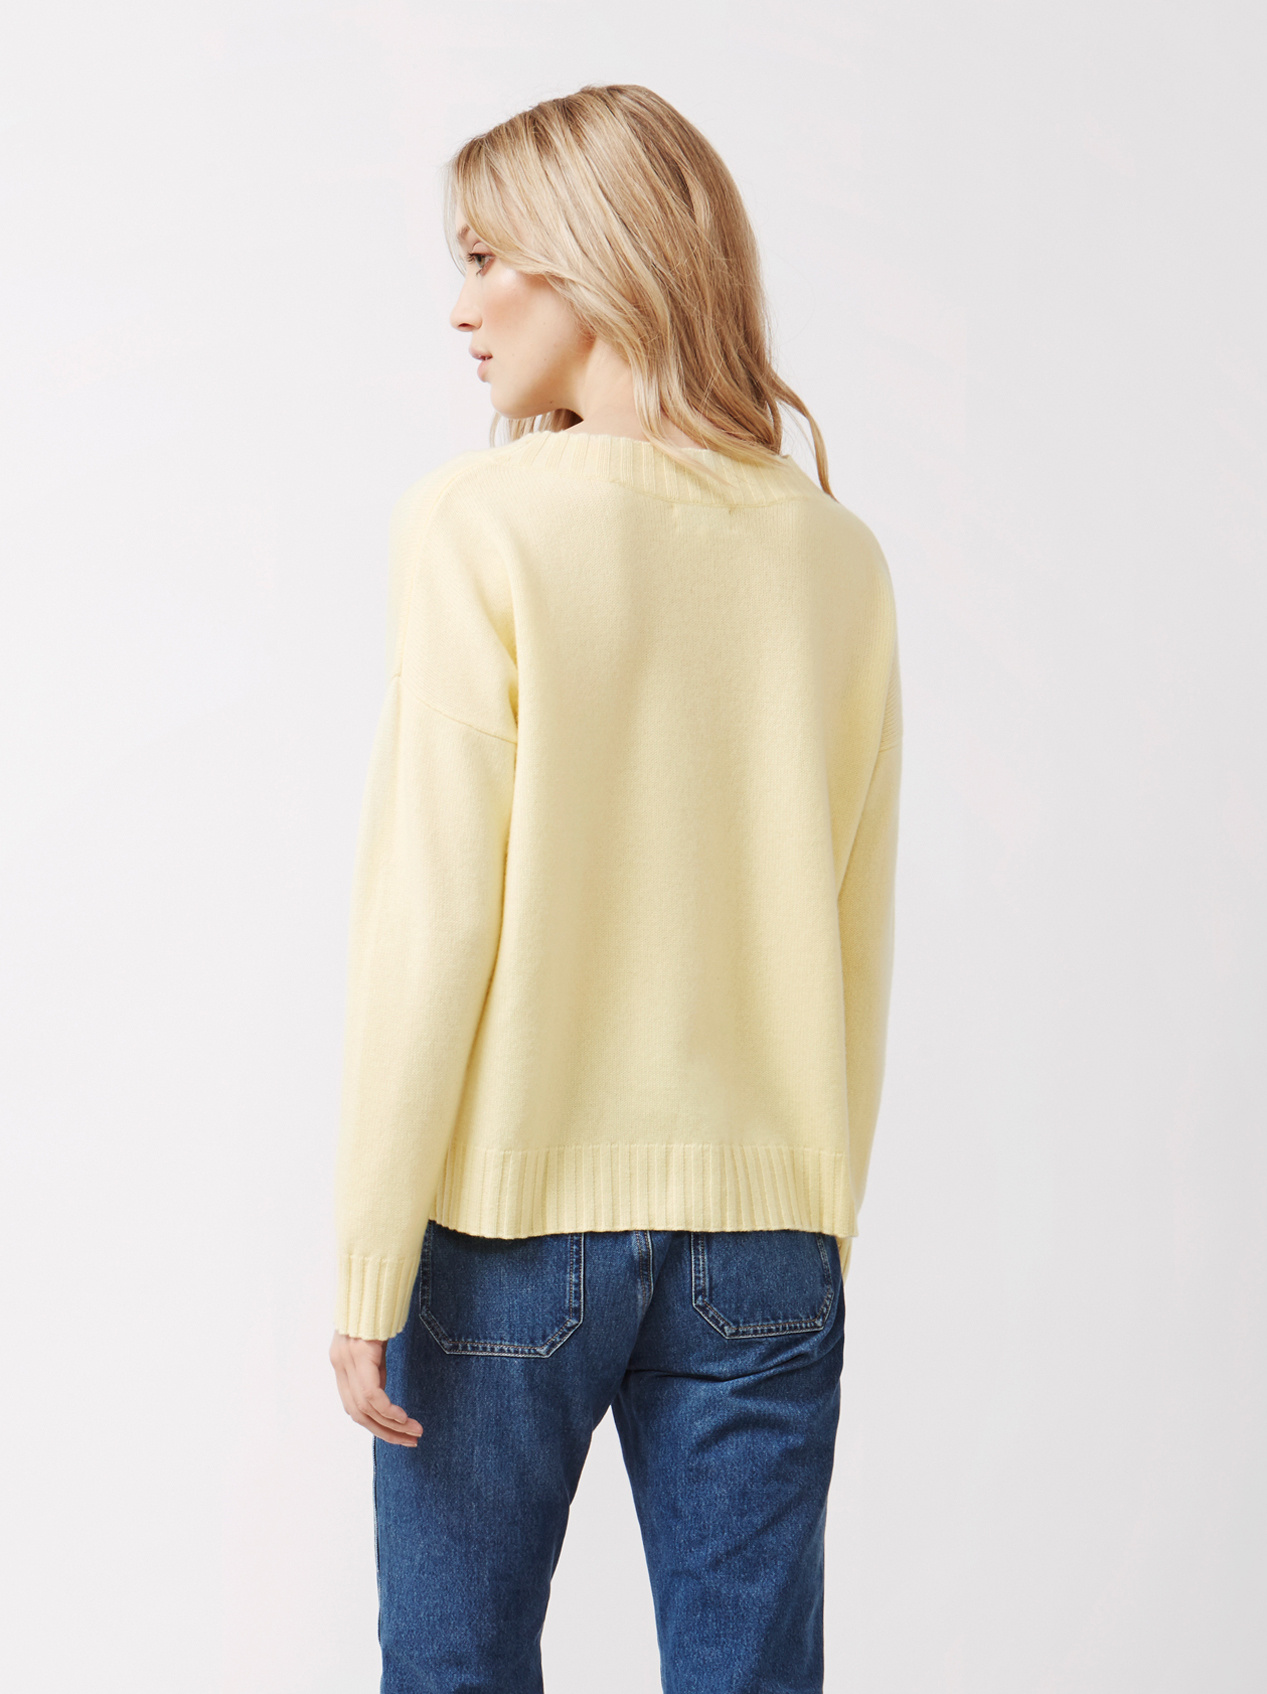 Soft Goat Women's Relaxed Sweater Limoncello